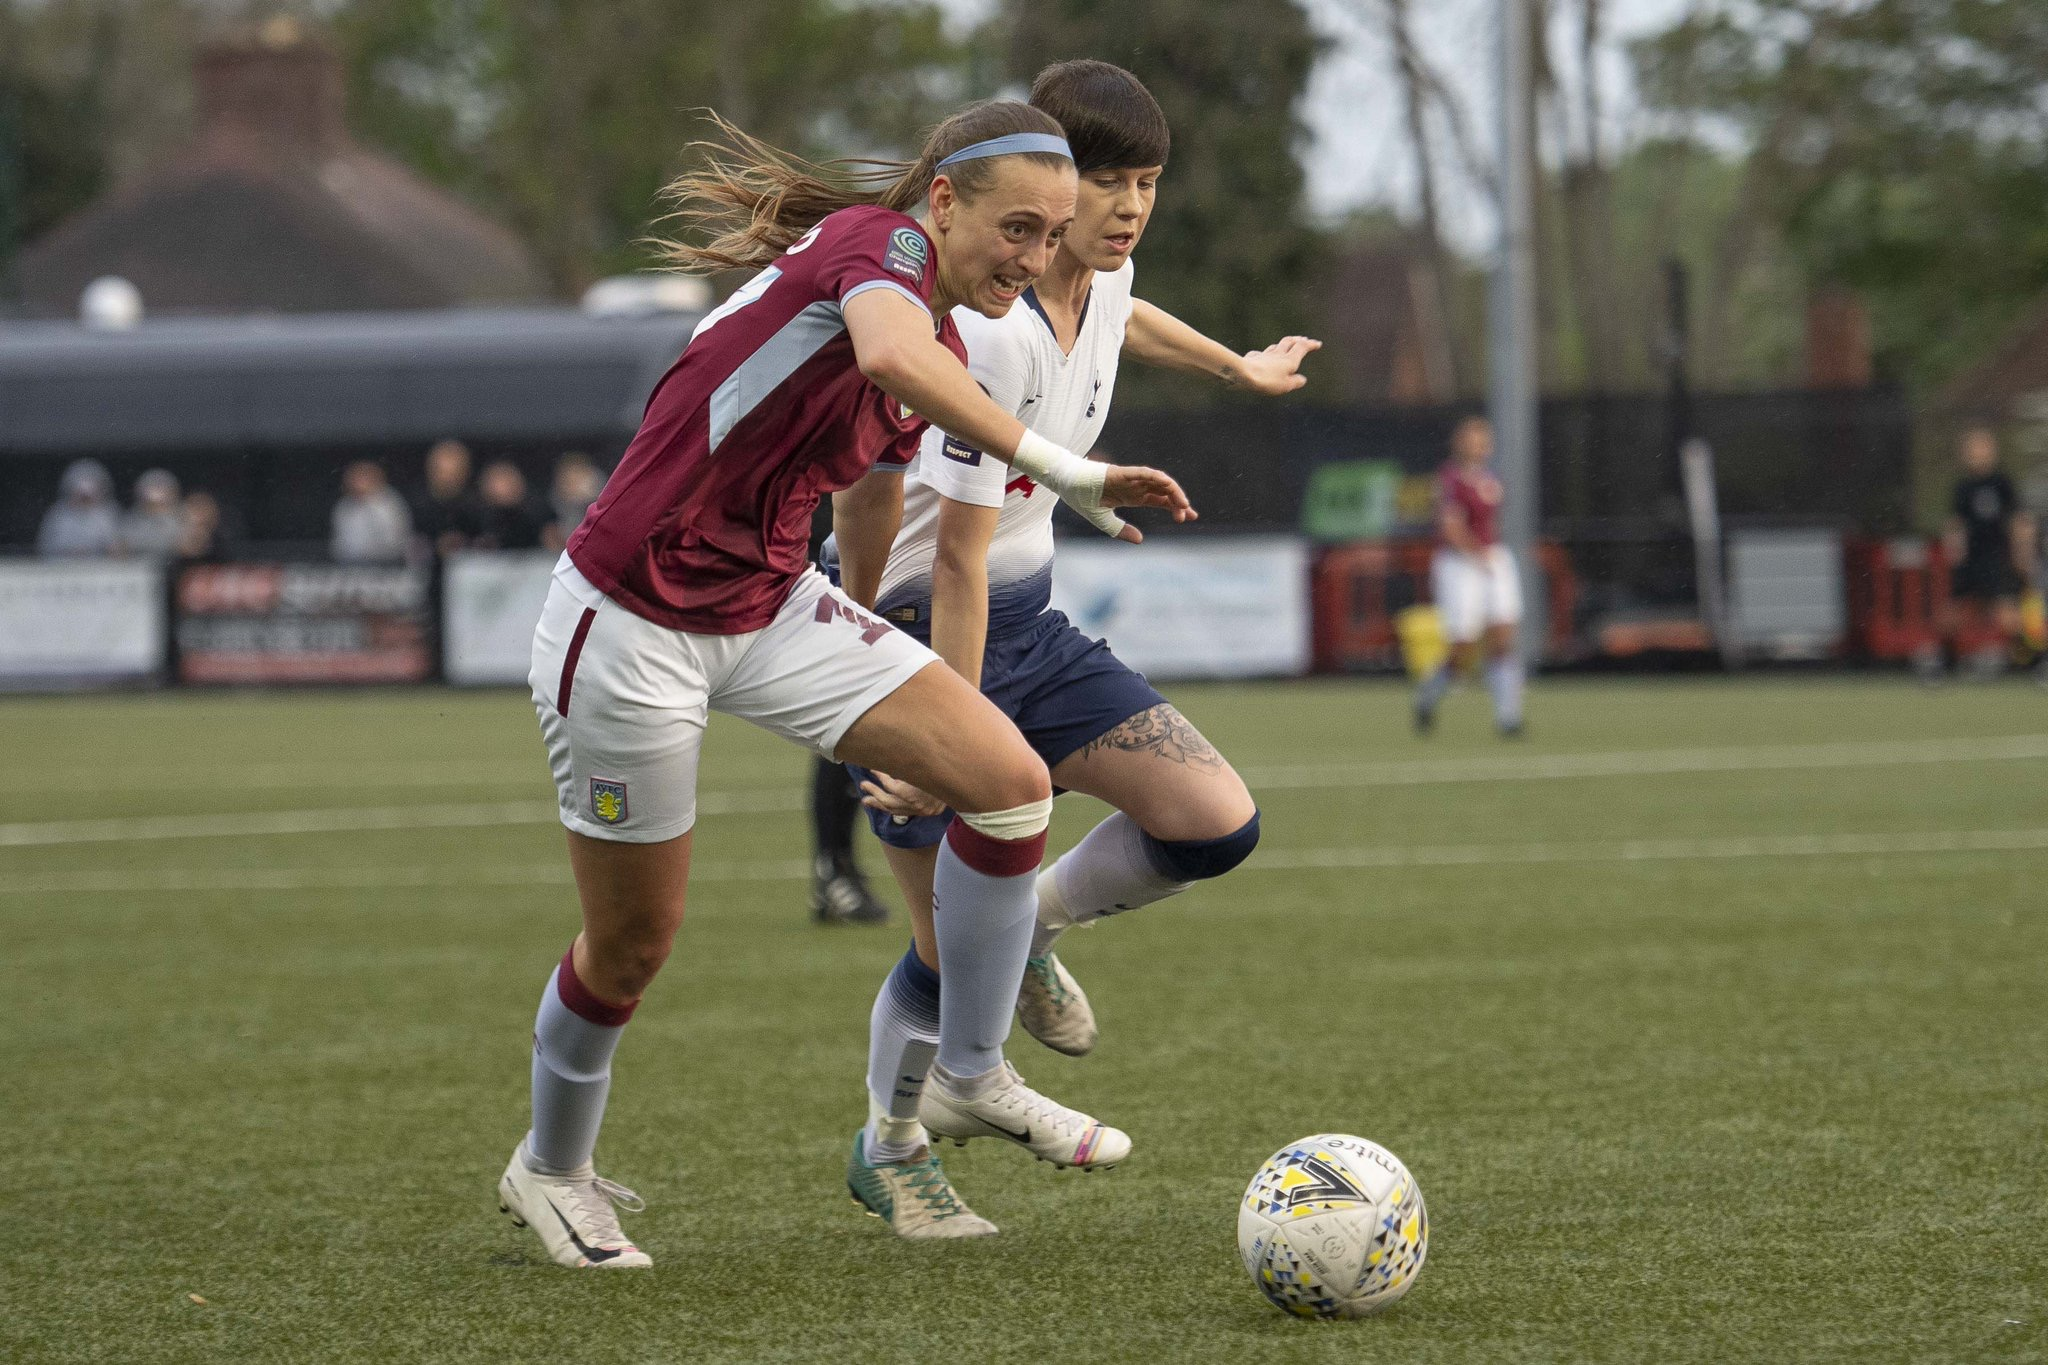 Villa taking on Spurs. Photo from @AVLFCOfficial